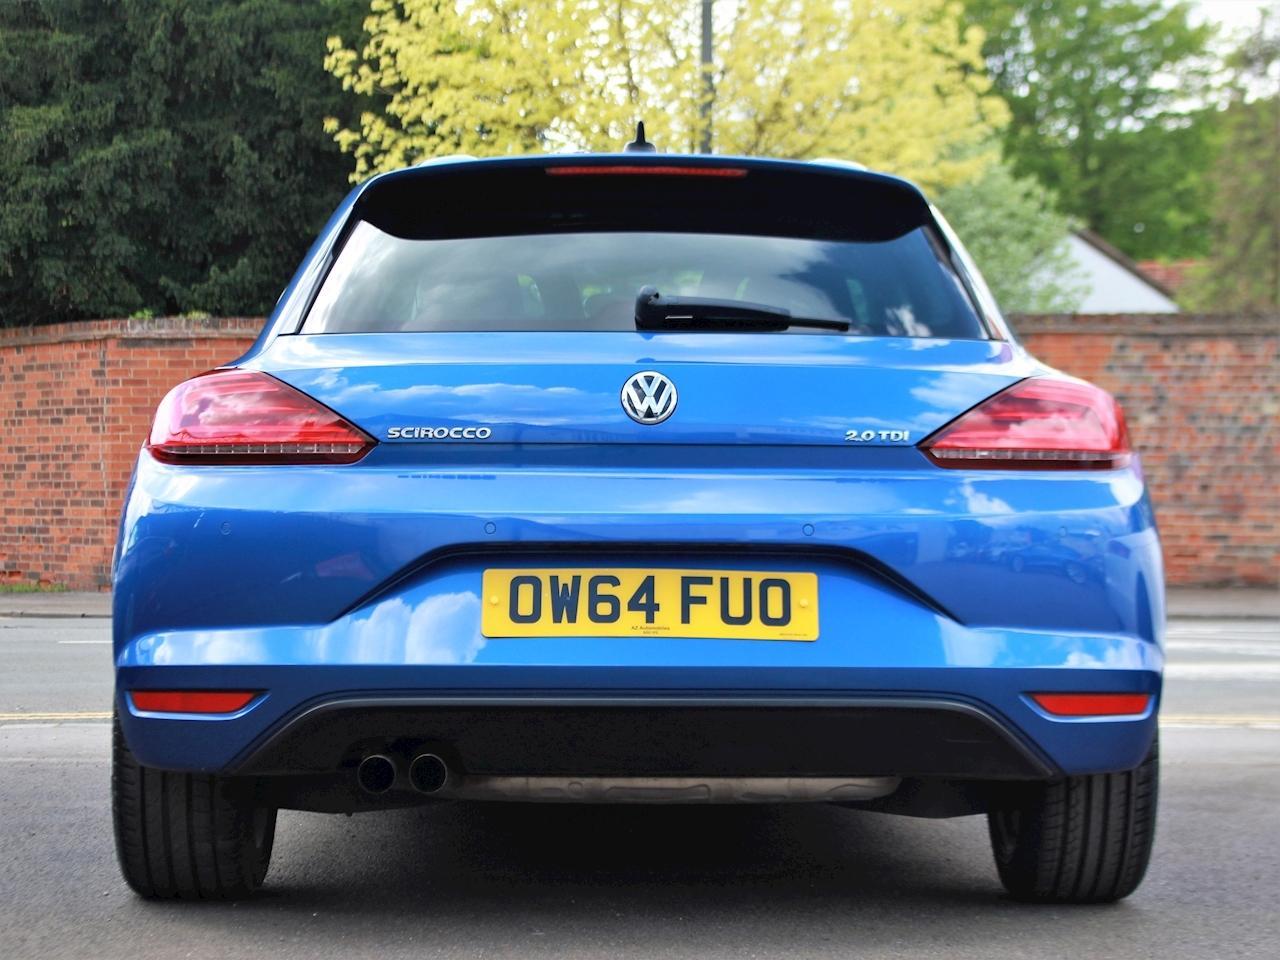 Volkswagen Scirocco Gt Tdi Bluemotion Technology Dsg - Large 7